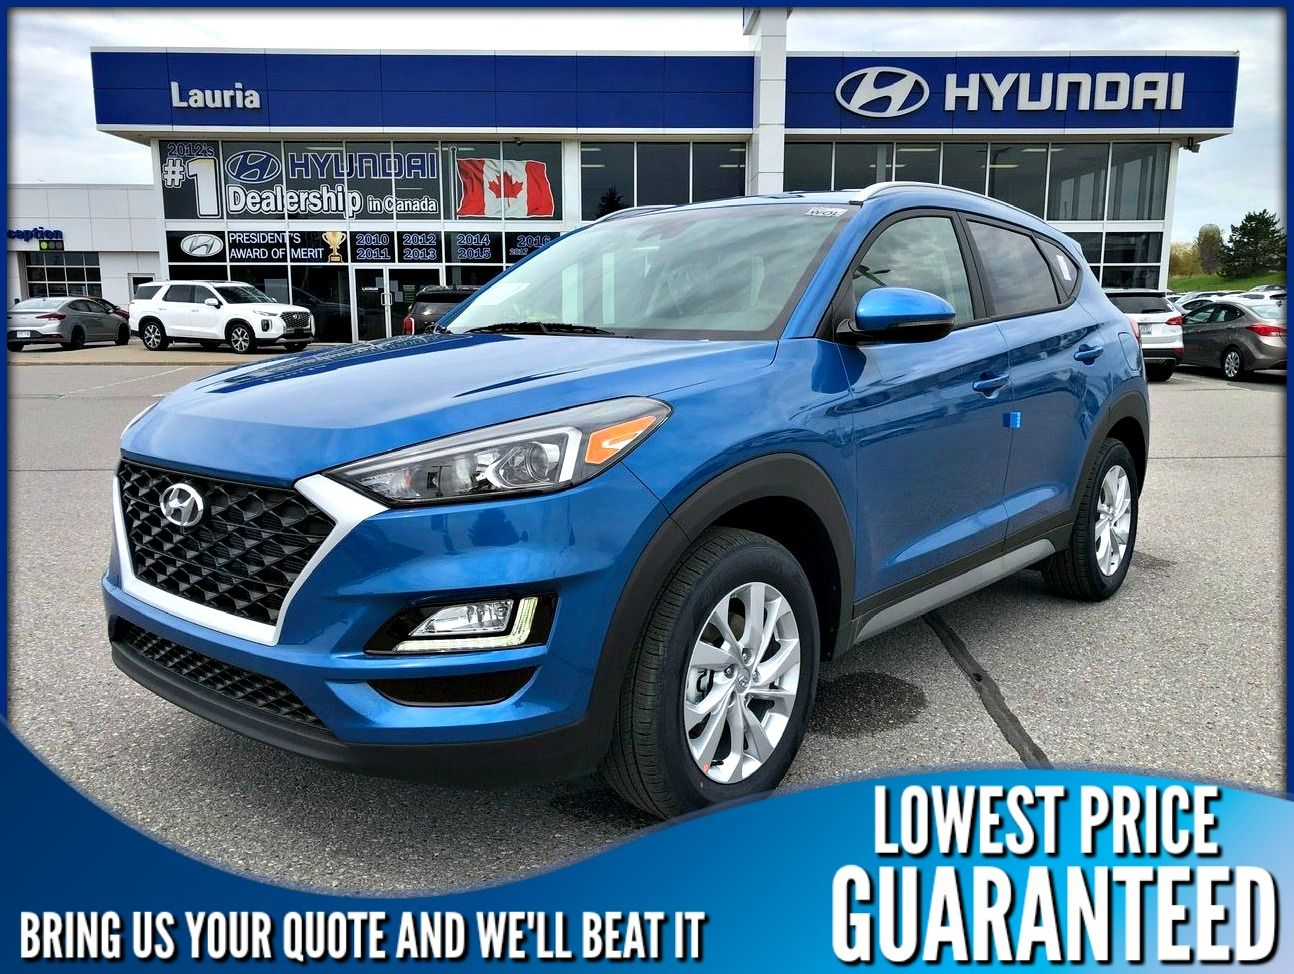 New 2020 Hyundai Tucson 2.0L AWD Preferred